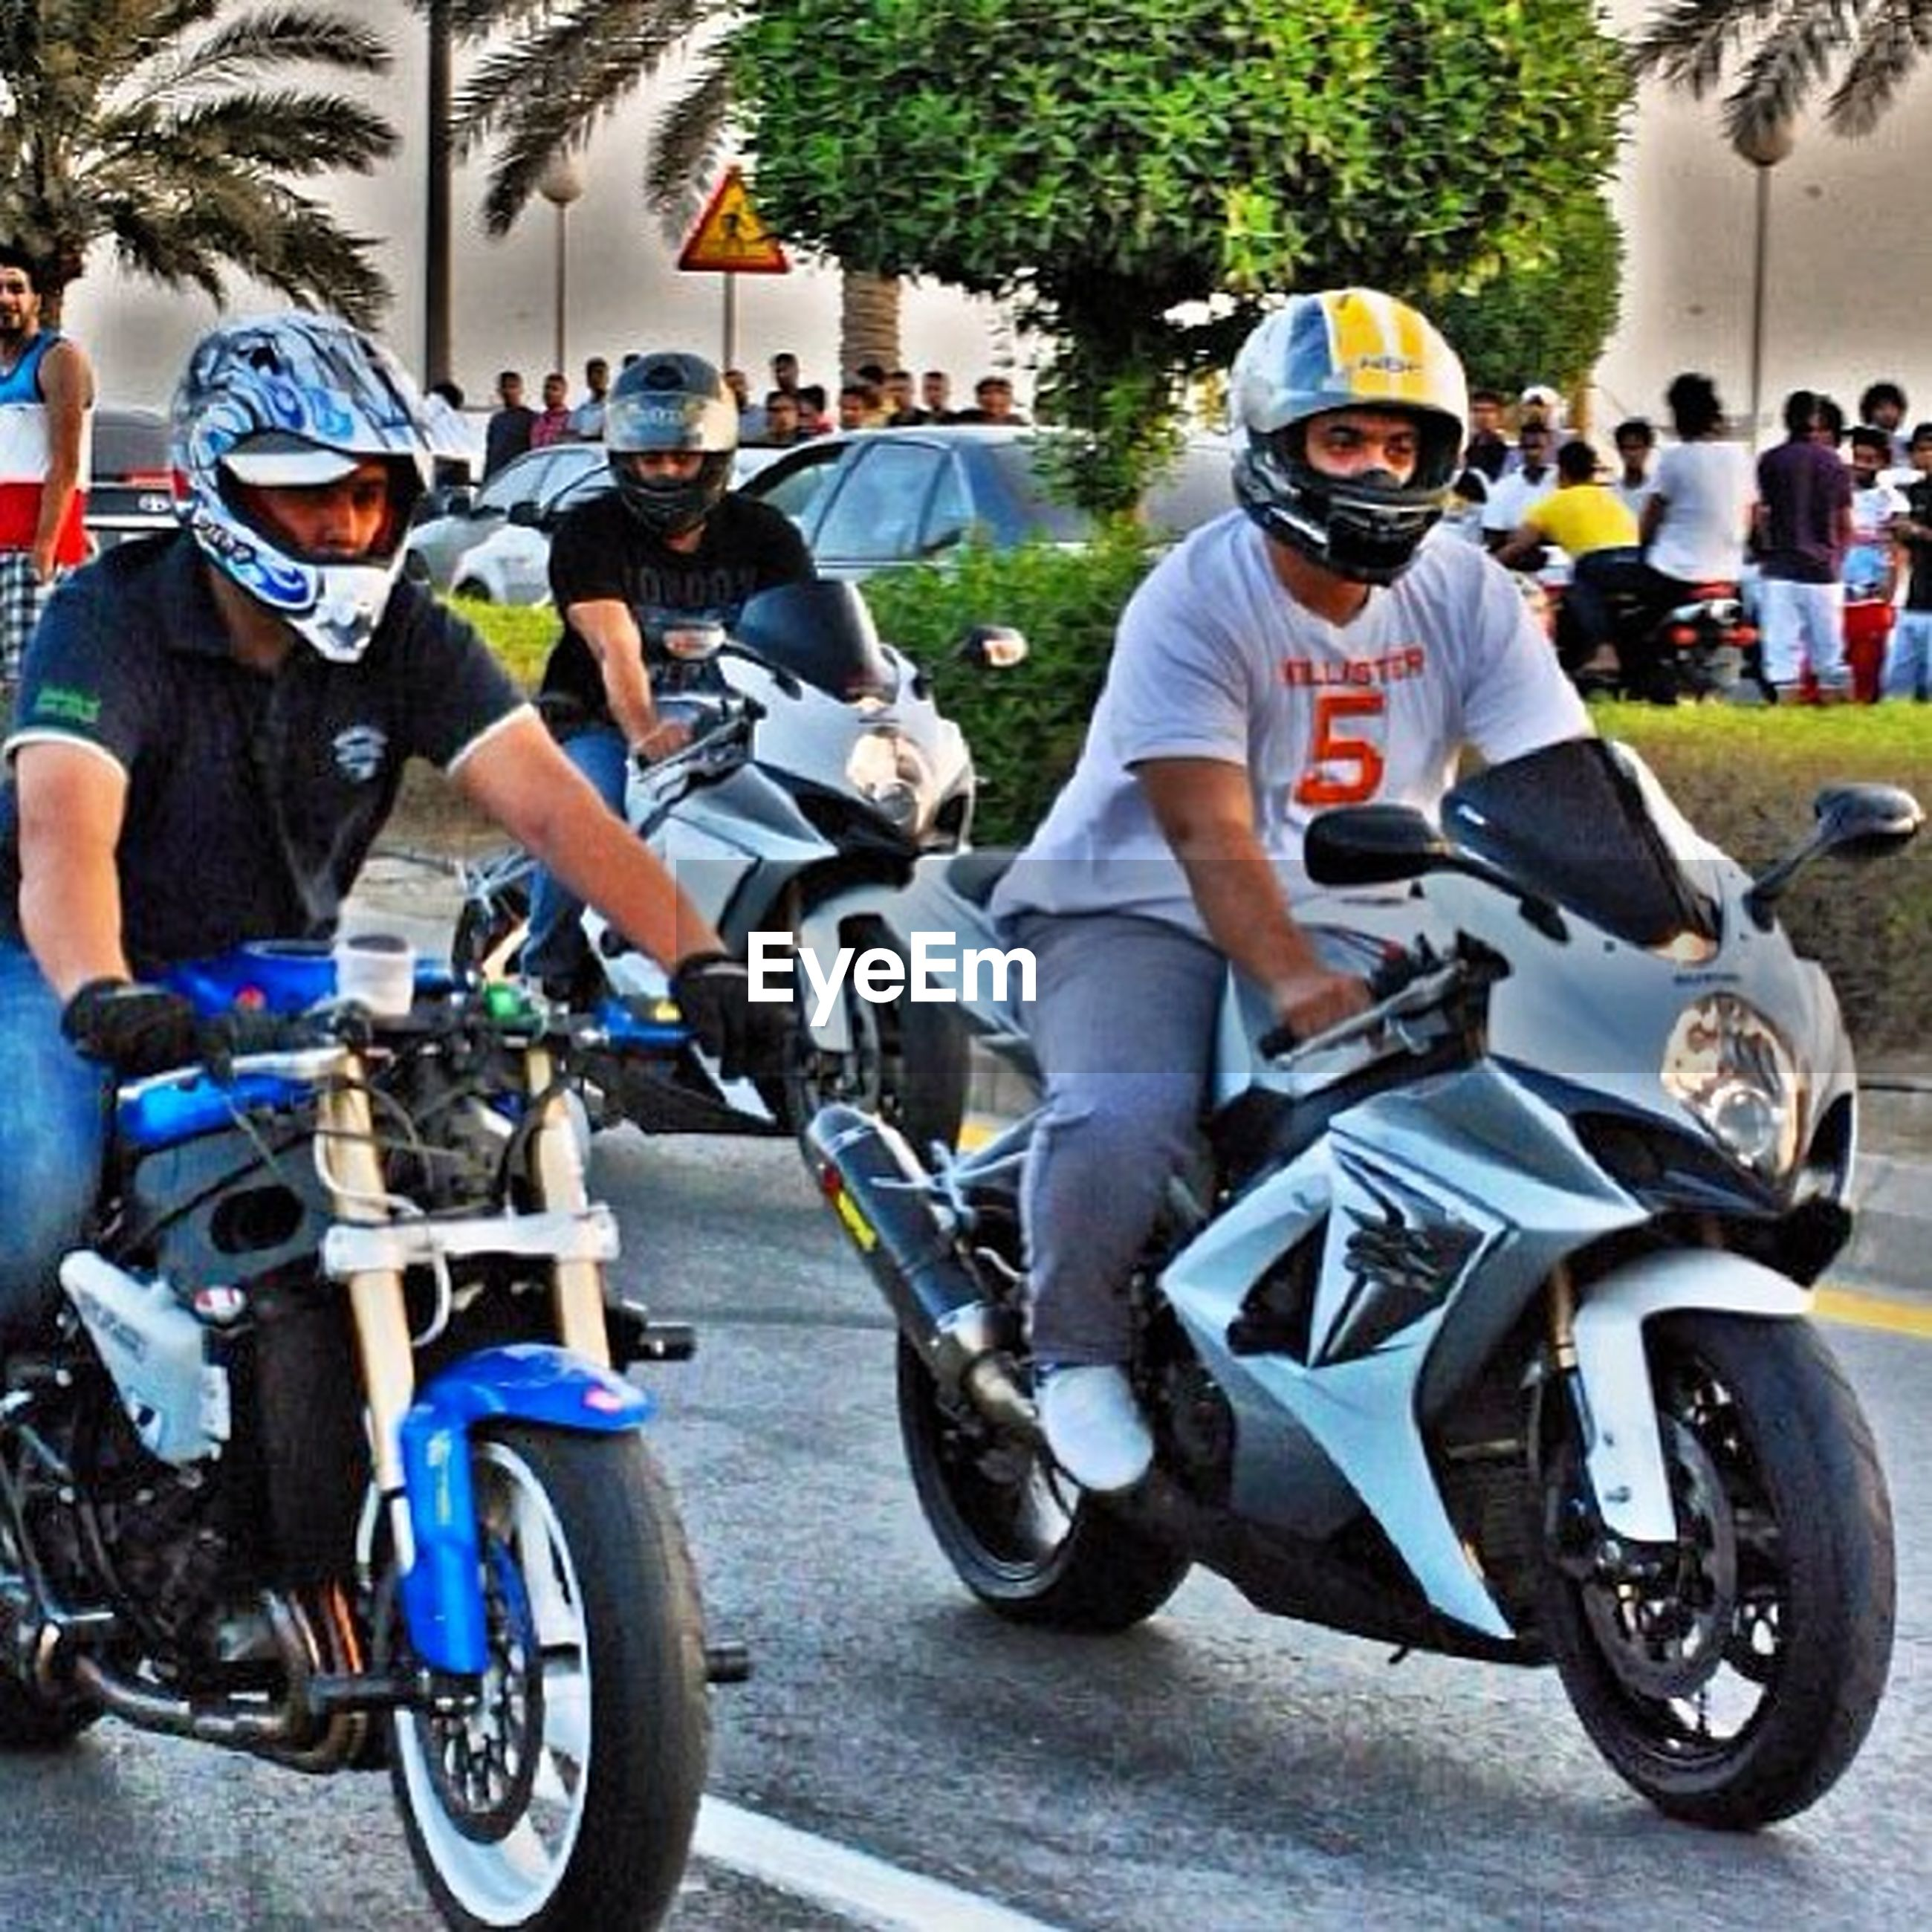 lifestyles, land vehicle, leisure activity, bicycle, men, transportation, mode of transport, casual clothing, riding, motorcycle, togetherness, street, full length, sitting, large group of people, person, boys, helmet, day